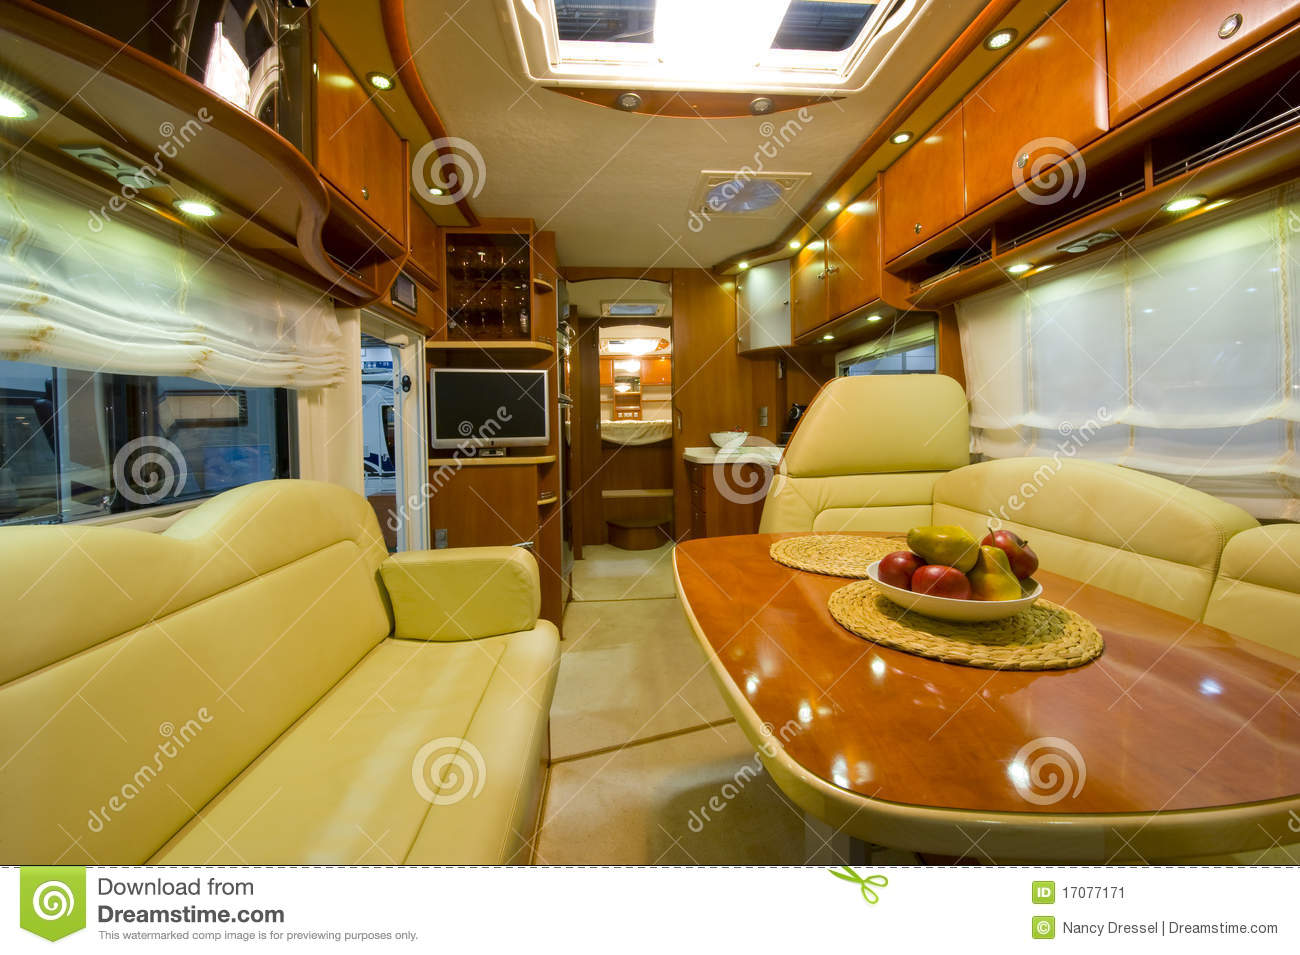 Camping car neuf int rieur image stock image du for Auto interieur kuisen